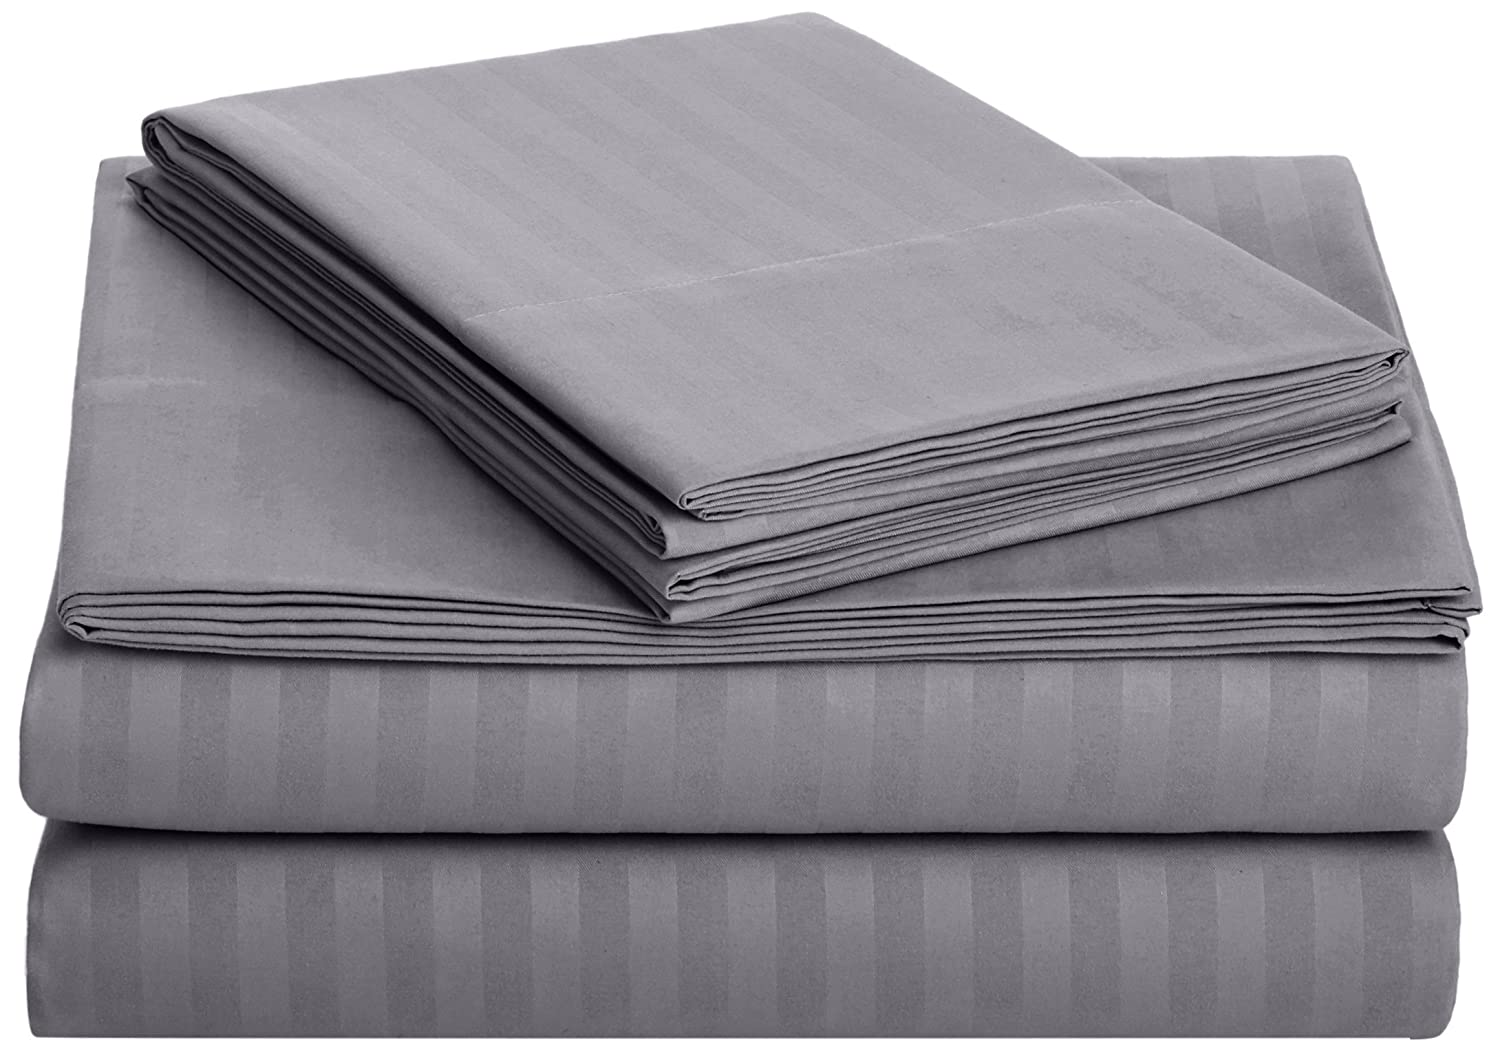 Amazon.com: AmazonBasics Deluxe Microfiber Striped Sheet Set, Dark